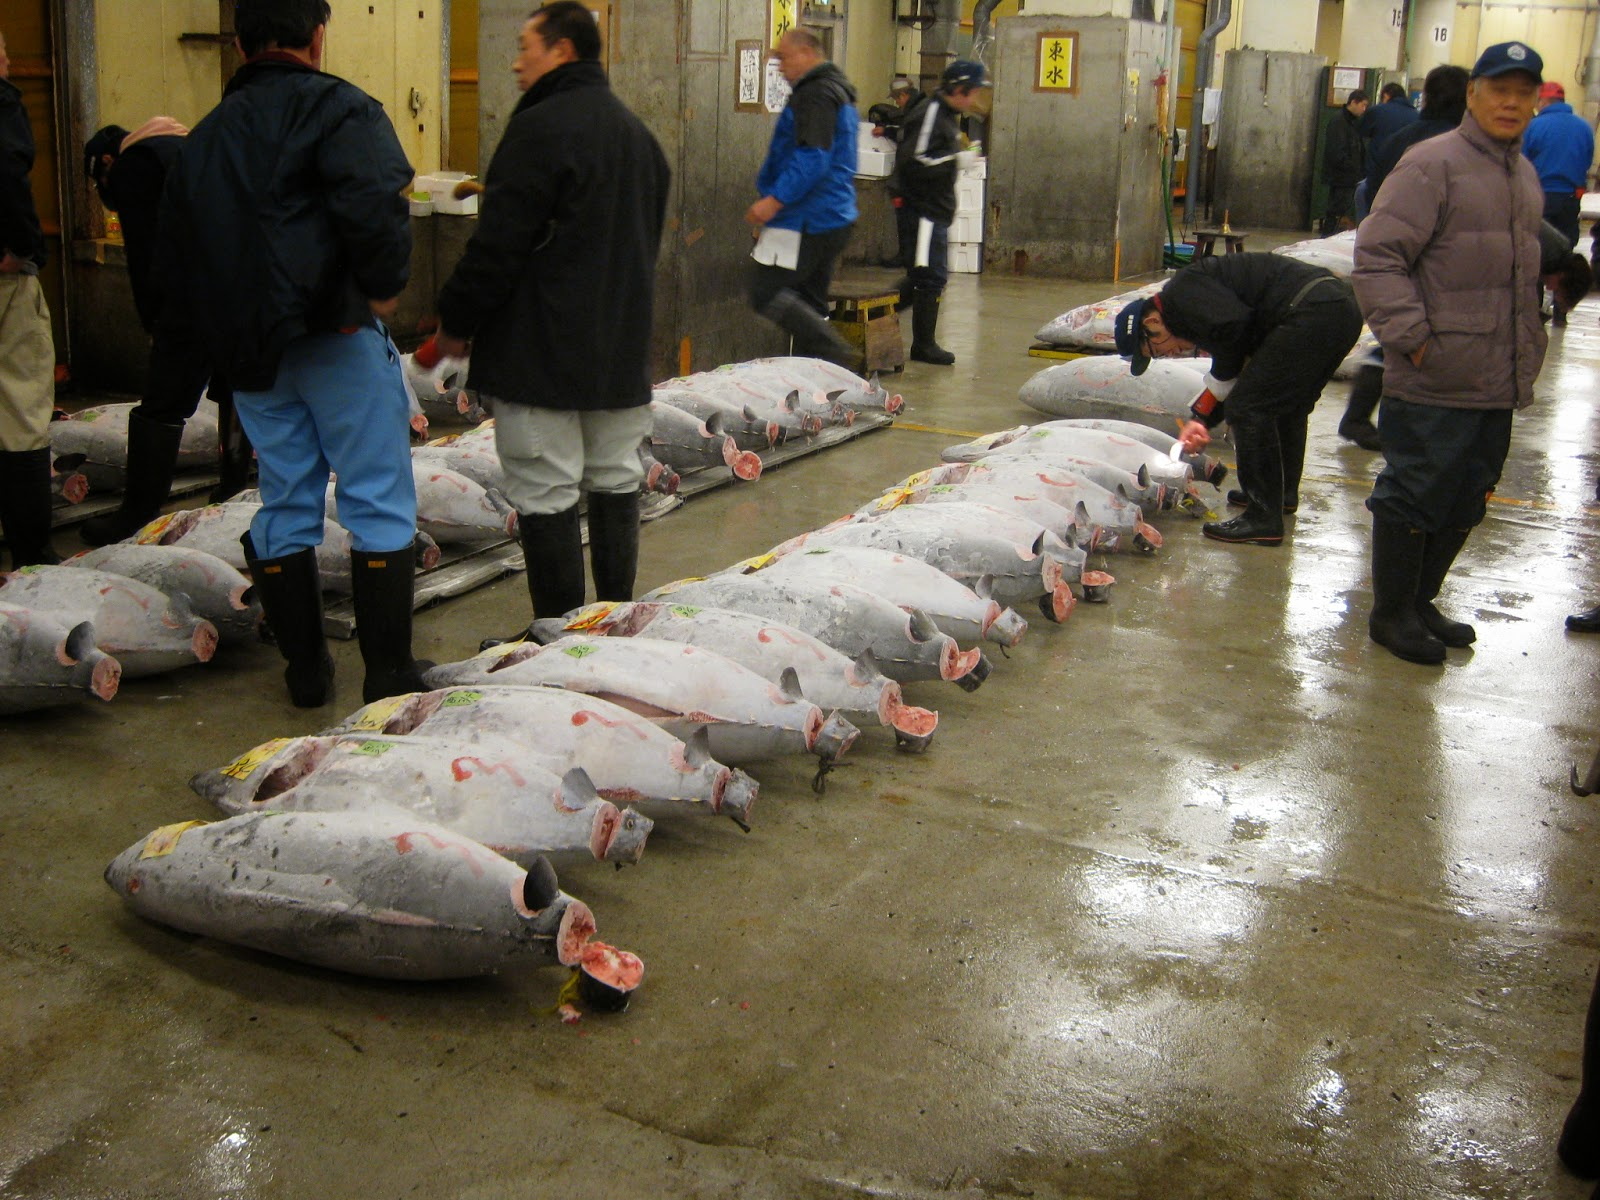 Tokyo - We quietly observe licensed buyers inspecting tuna